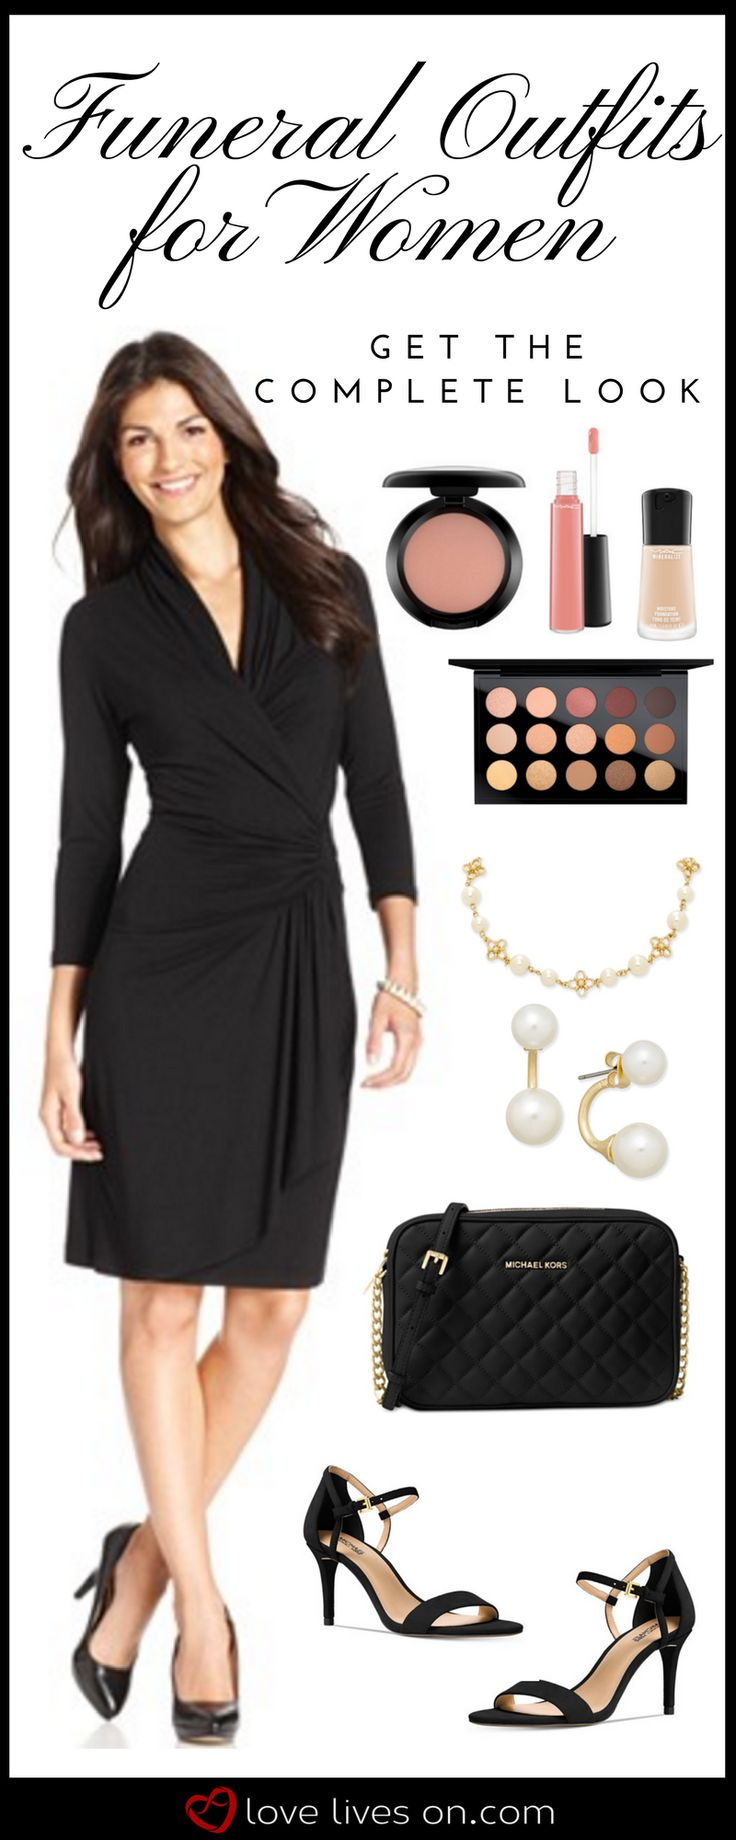 Appropriate Funeral Outfits for Women. Click to use our complete online shopping guide to appropriate funeral attire & shop this full look. Funeral Outfits for Women | What to Wear to a Funeral | Women's Funeral Attire | Appropriate Funeral Outfits, Funeral Clothes